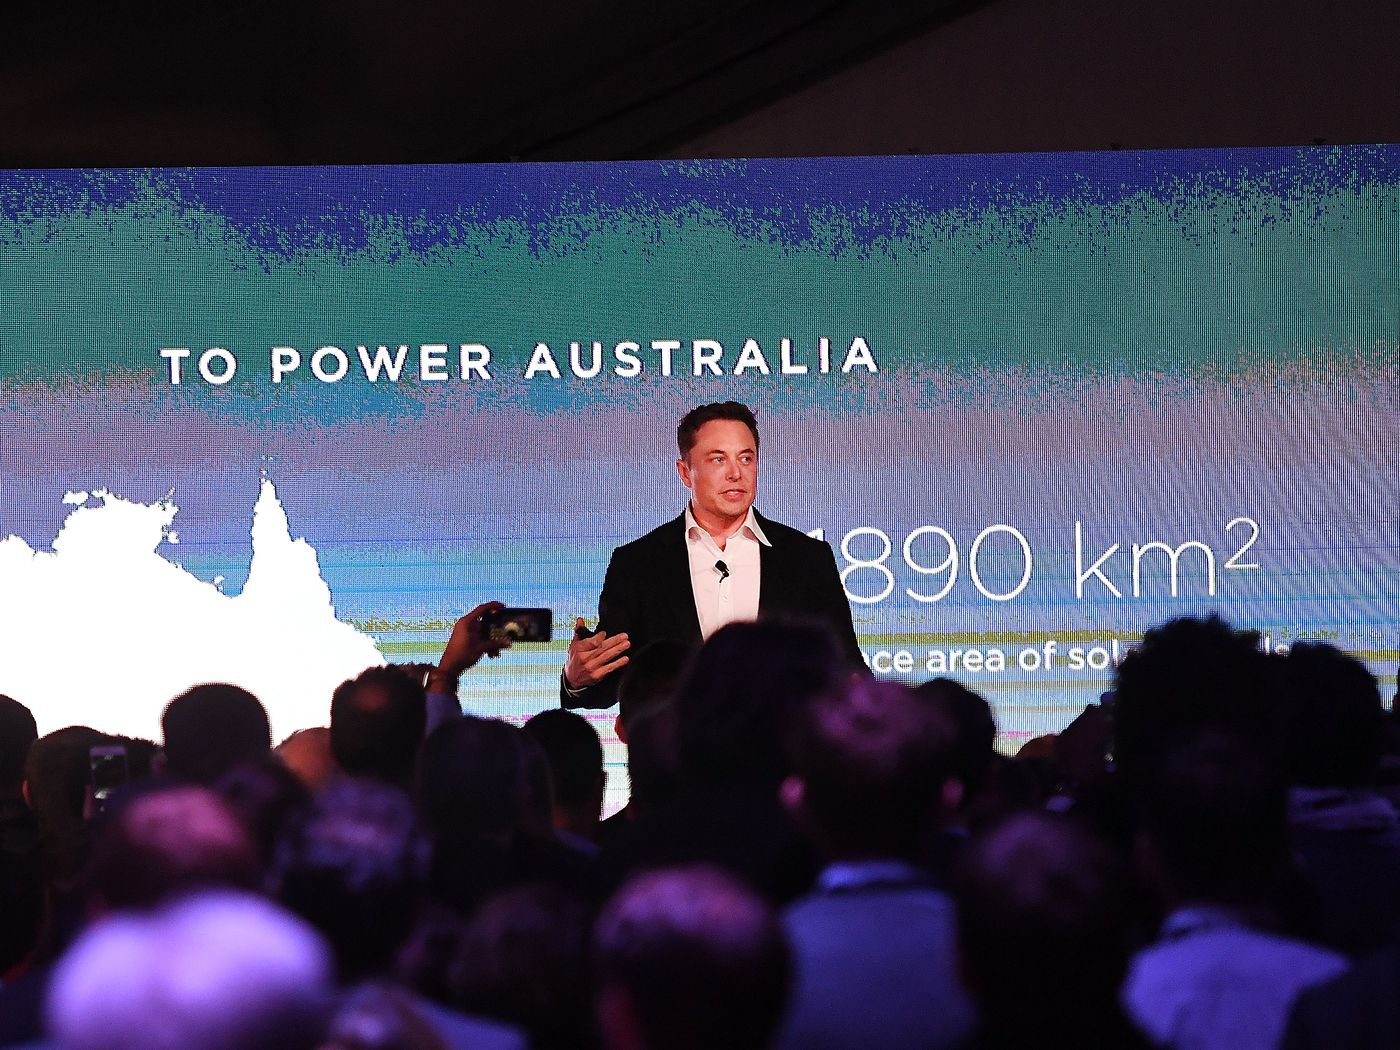 Elon Musk Bet That Tesla Could Build The World S Biggest Battery In 100 Days He Won Vox